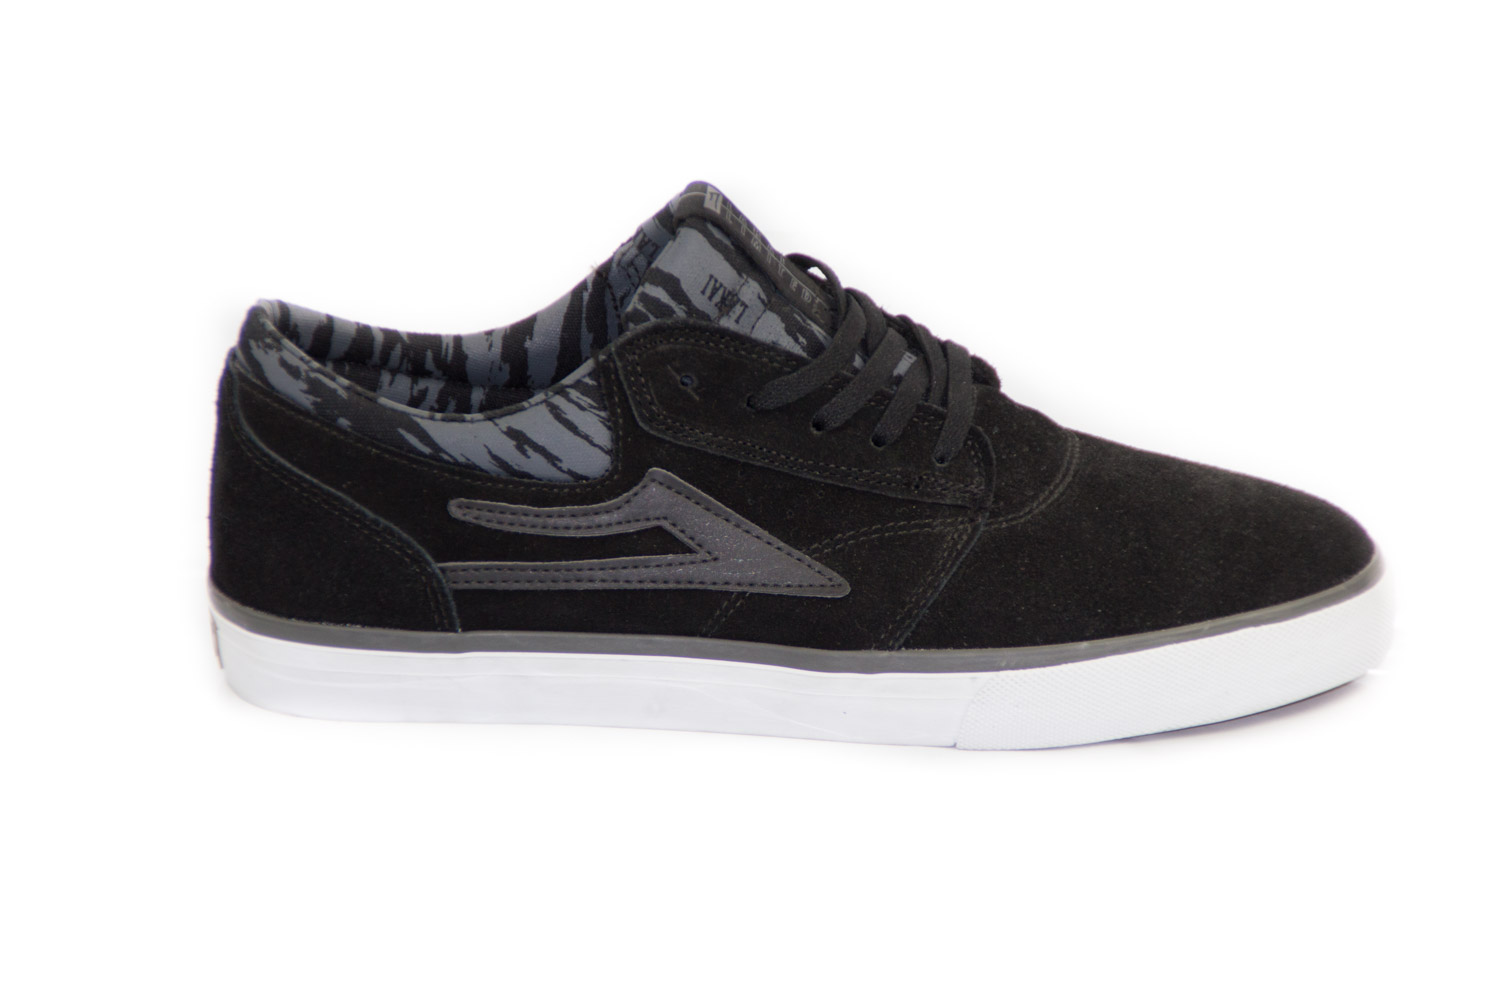 ... Side view of Lakai Griffin Skate Shoe Black Grey ...